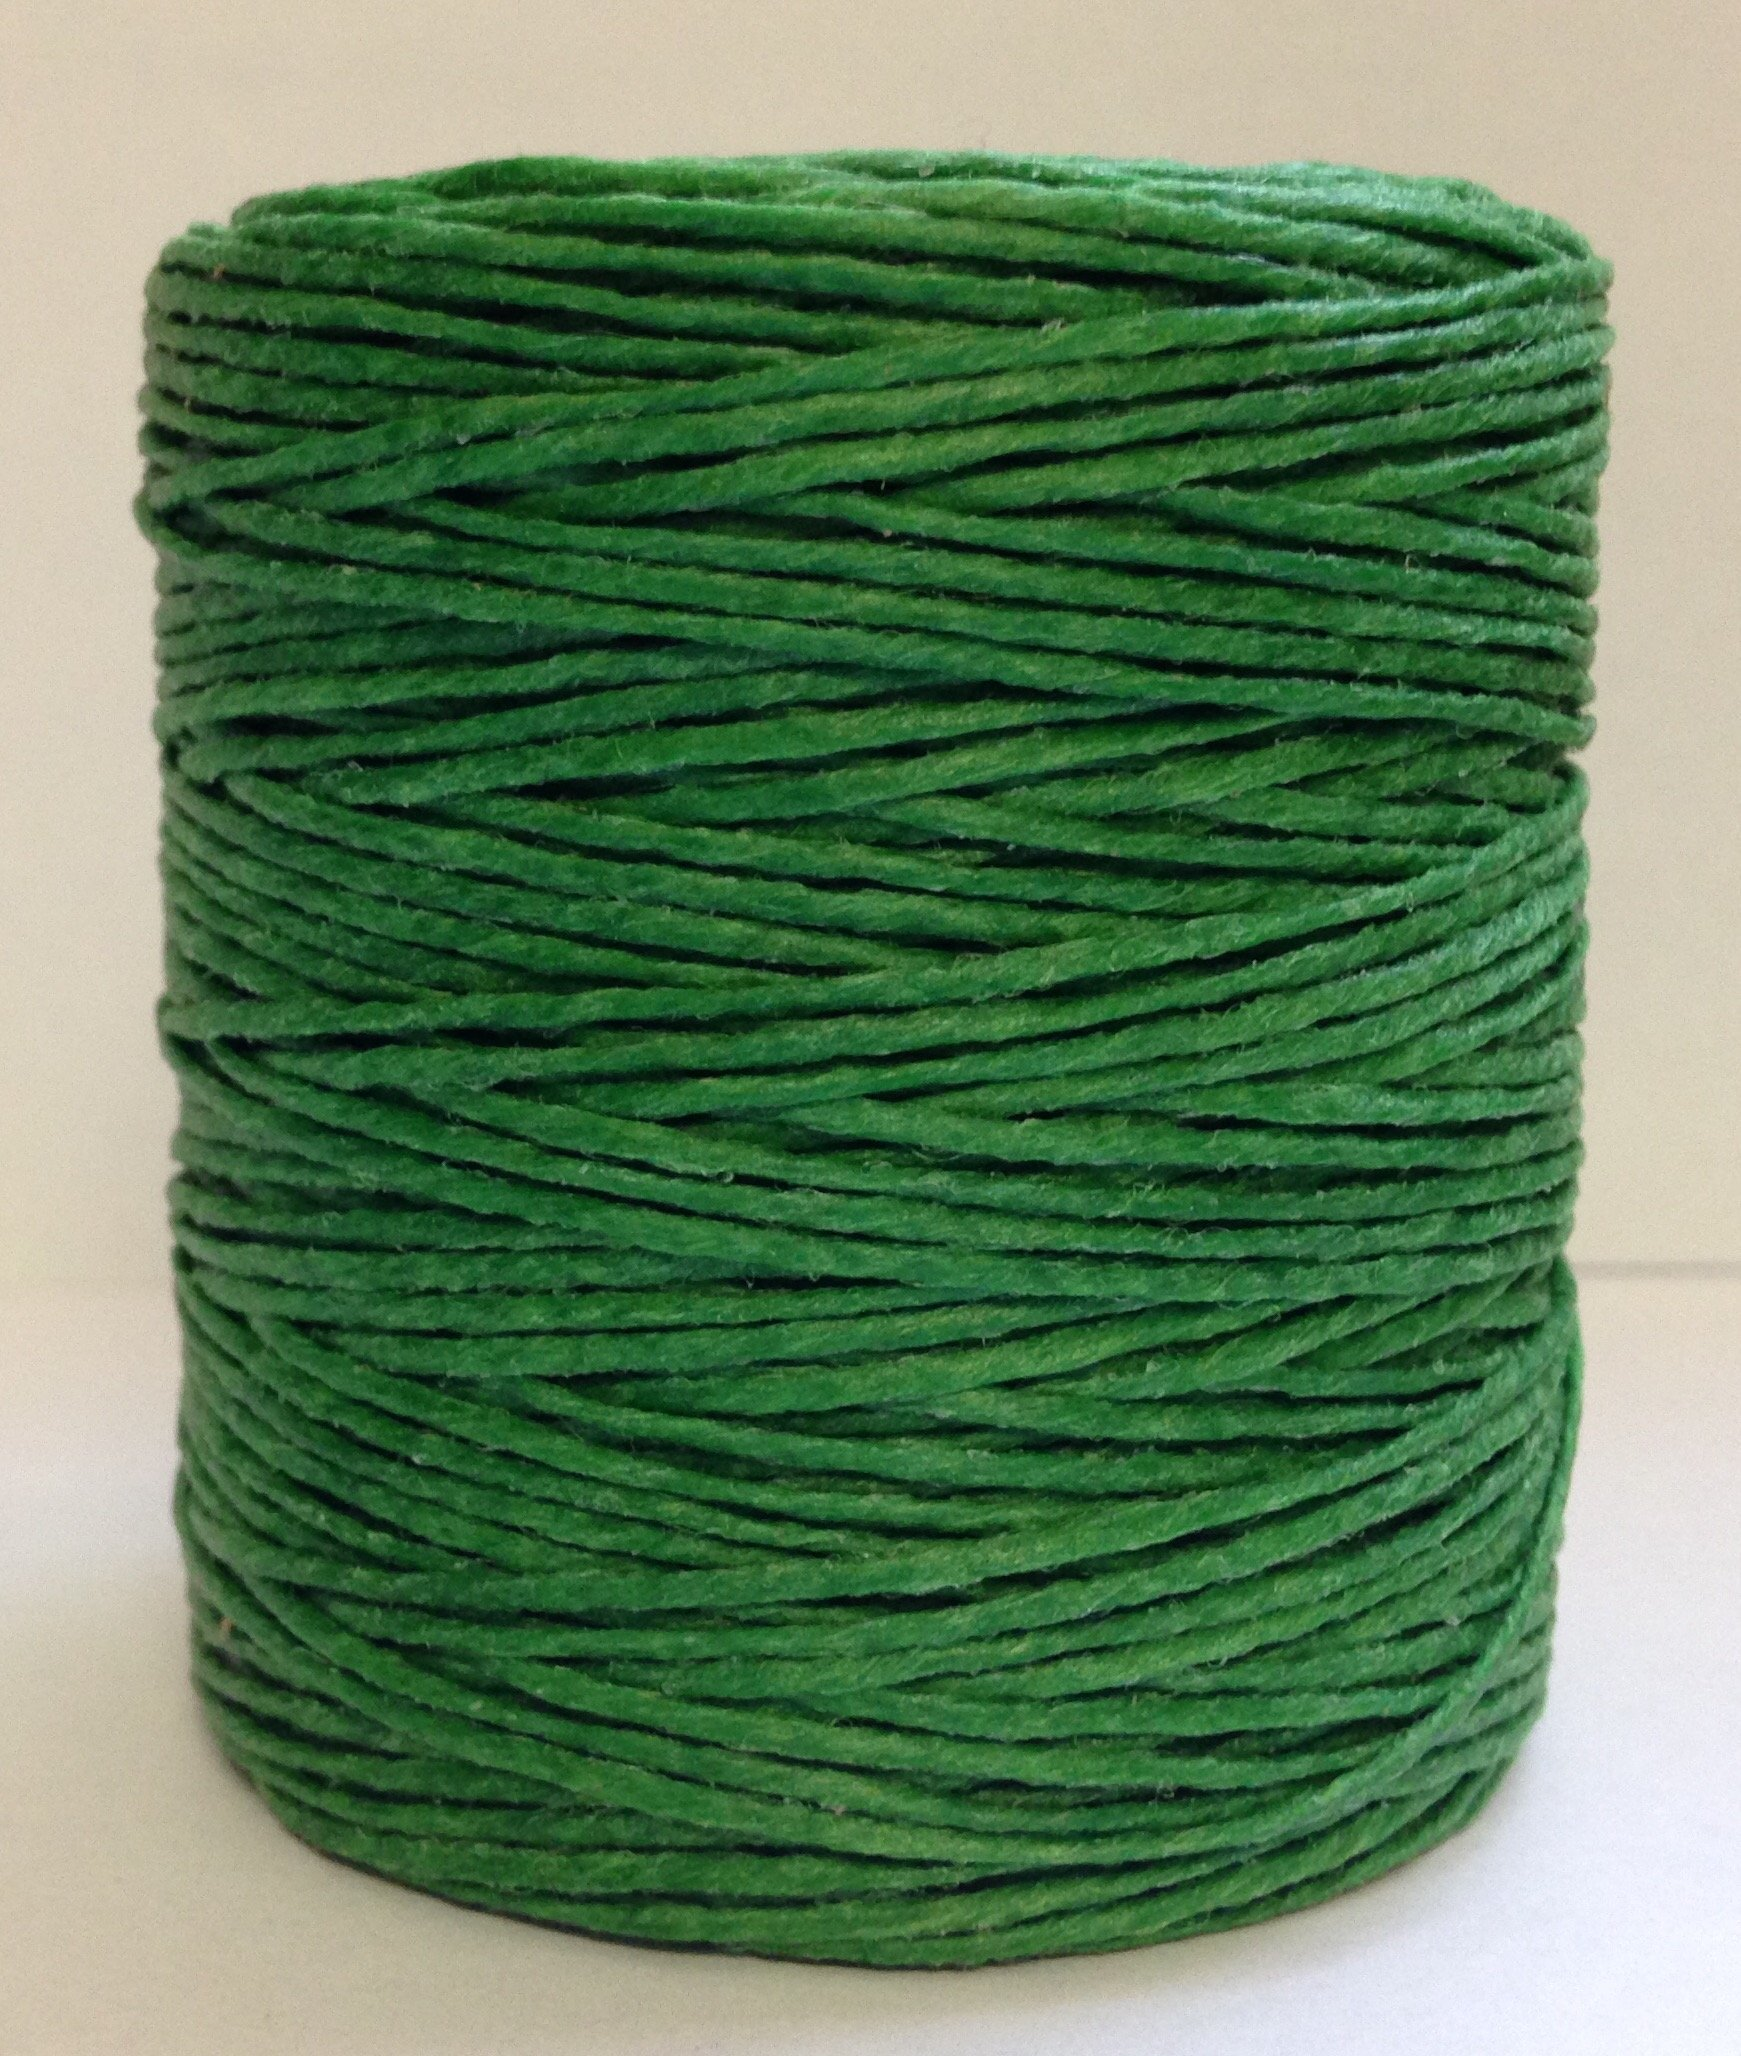 Maine Thread - .040'' Kelly Green Waxed Polycord. 210 feet each. Includes 2 spools. by Maine Thread